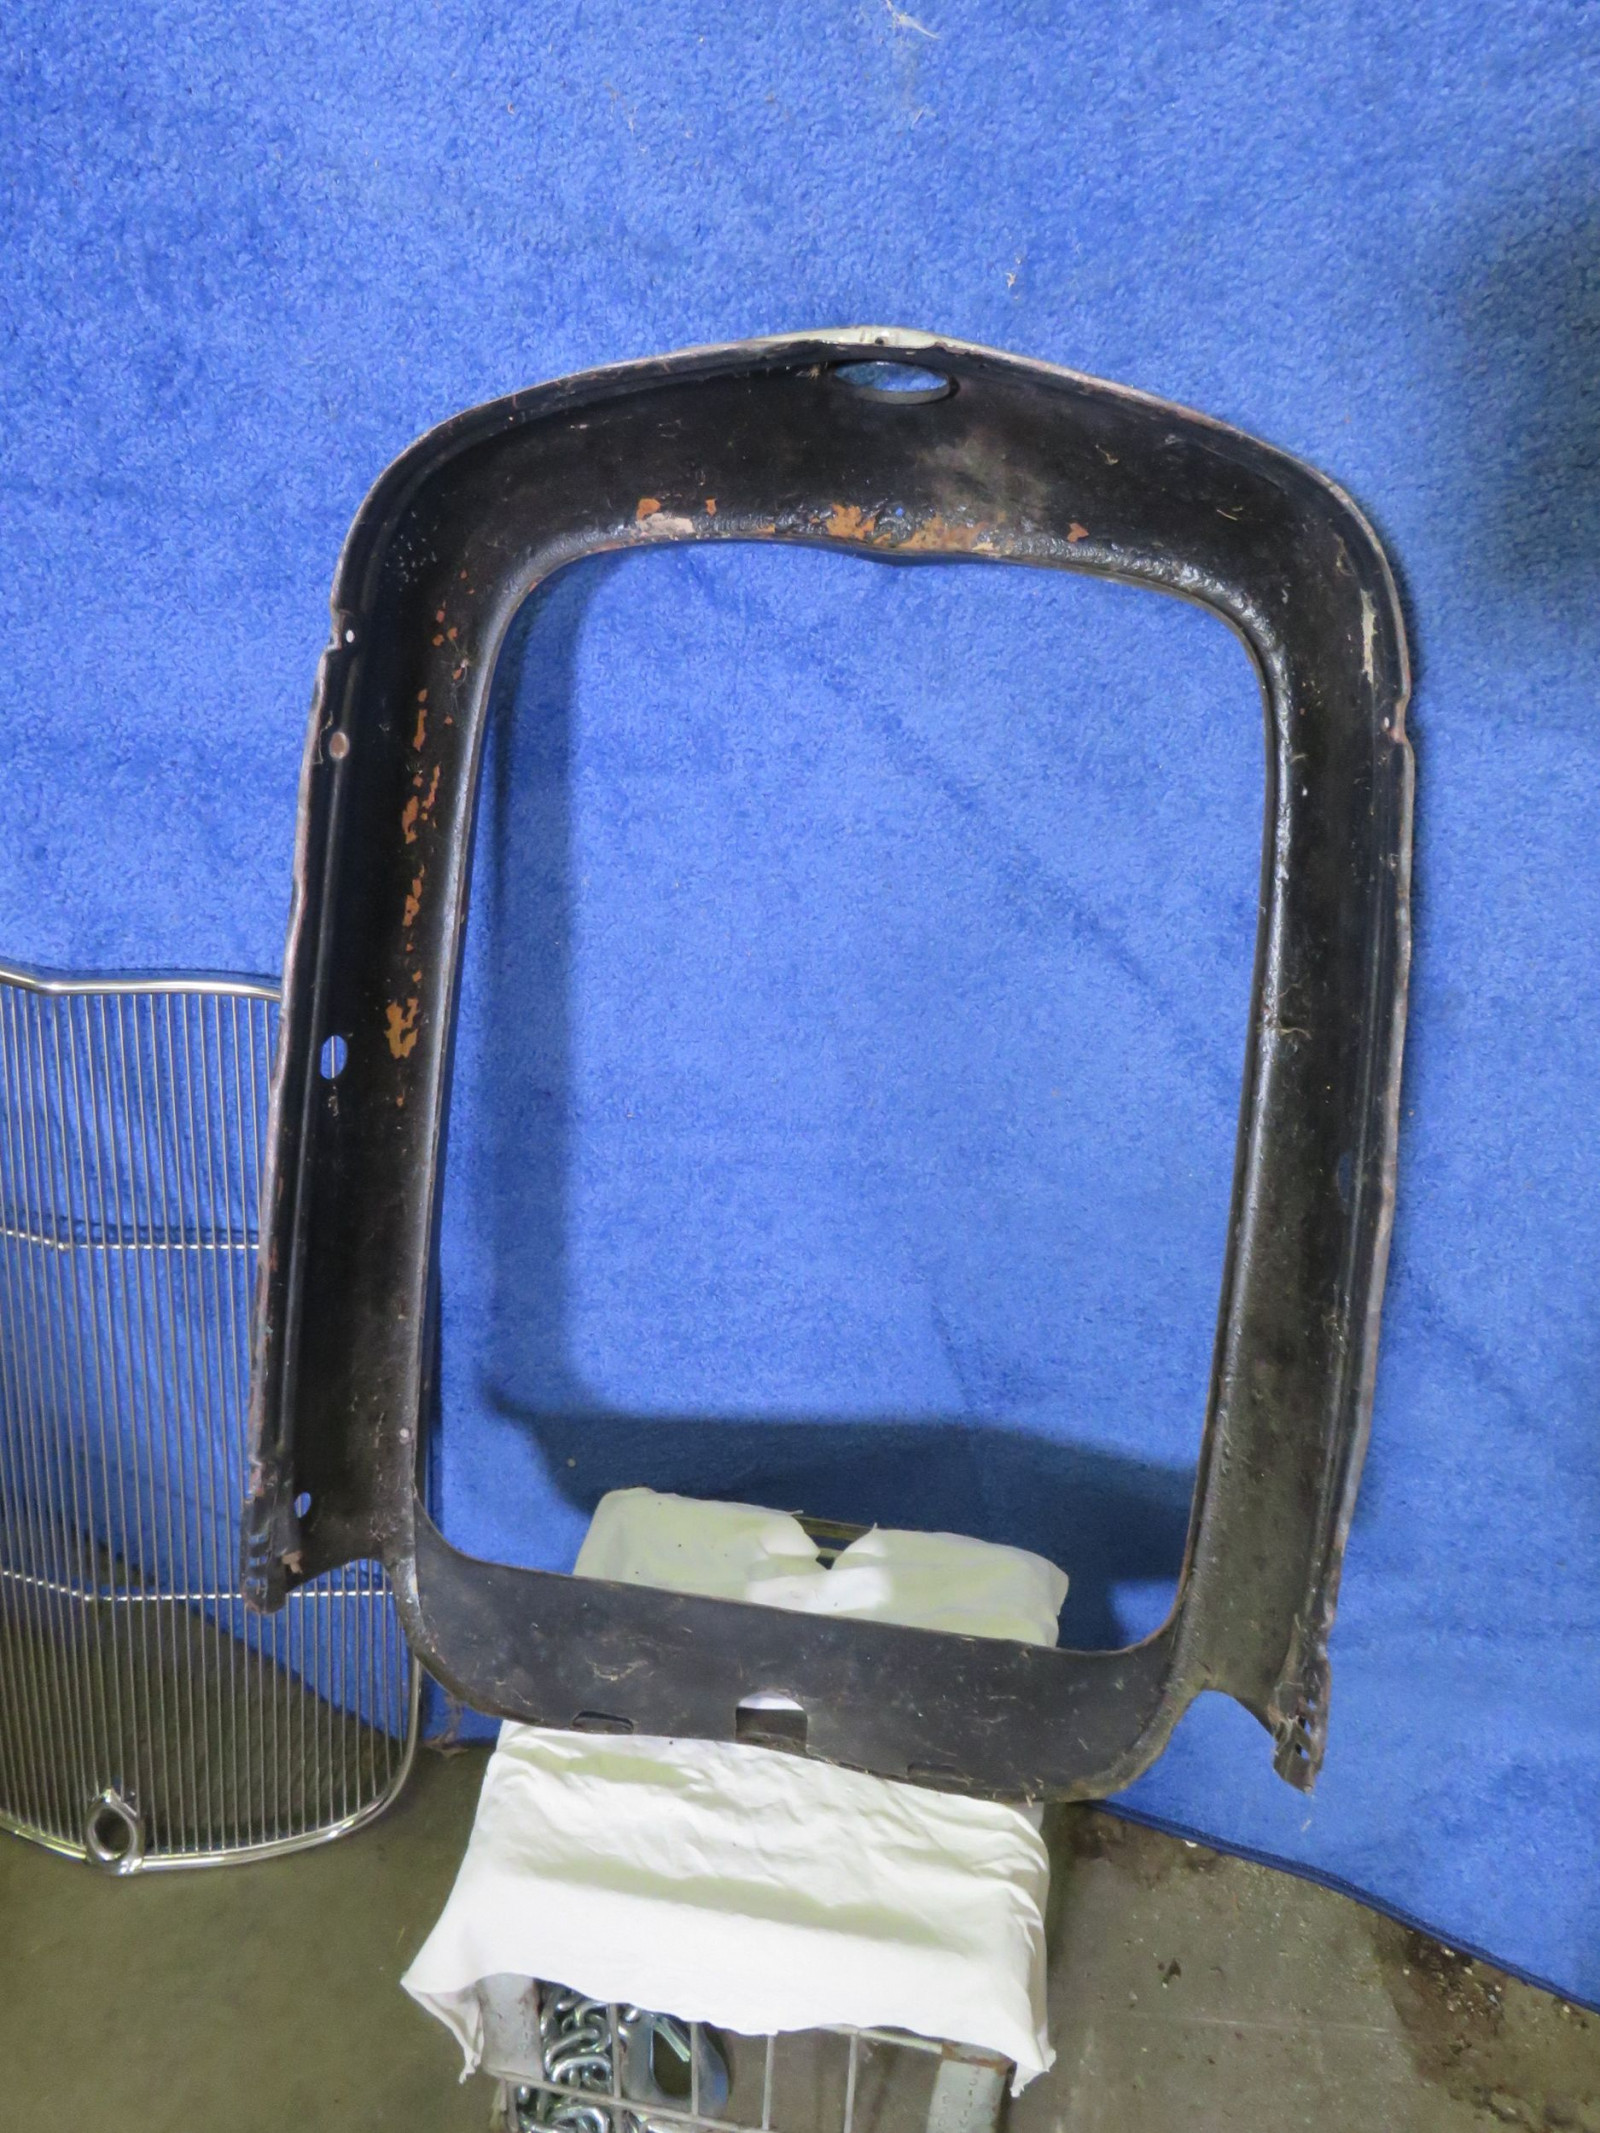 NOS 1932 Ford Grill Shell with Aftermarket Center Grill - Image 2